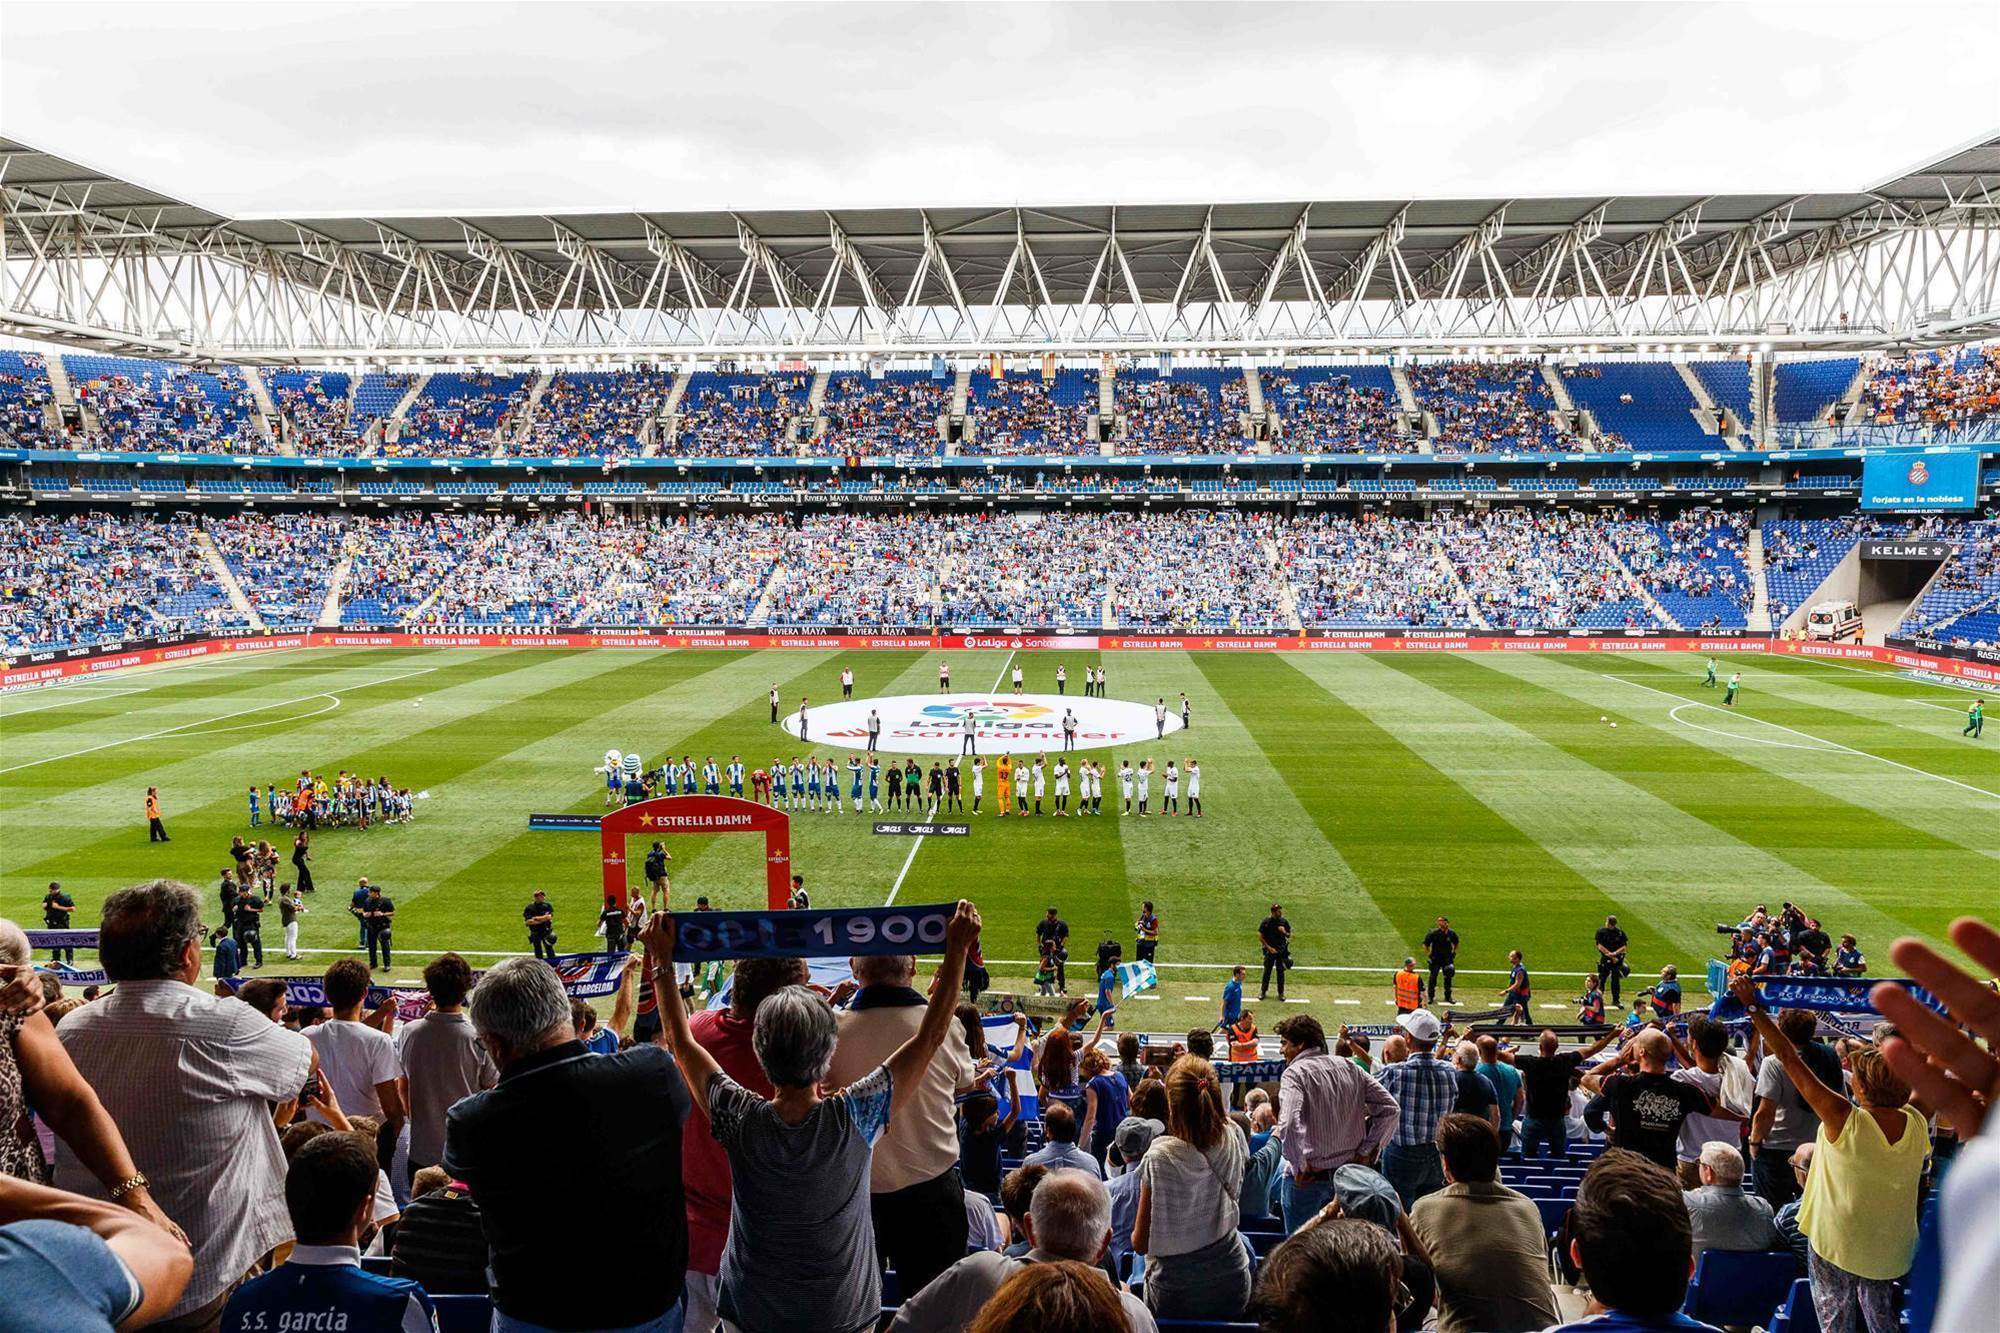 RCDE Stadium: When football is life and death